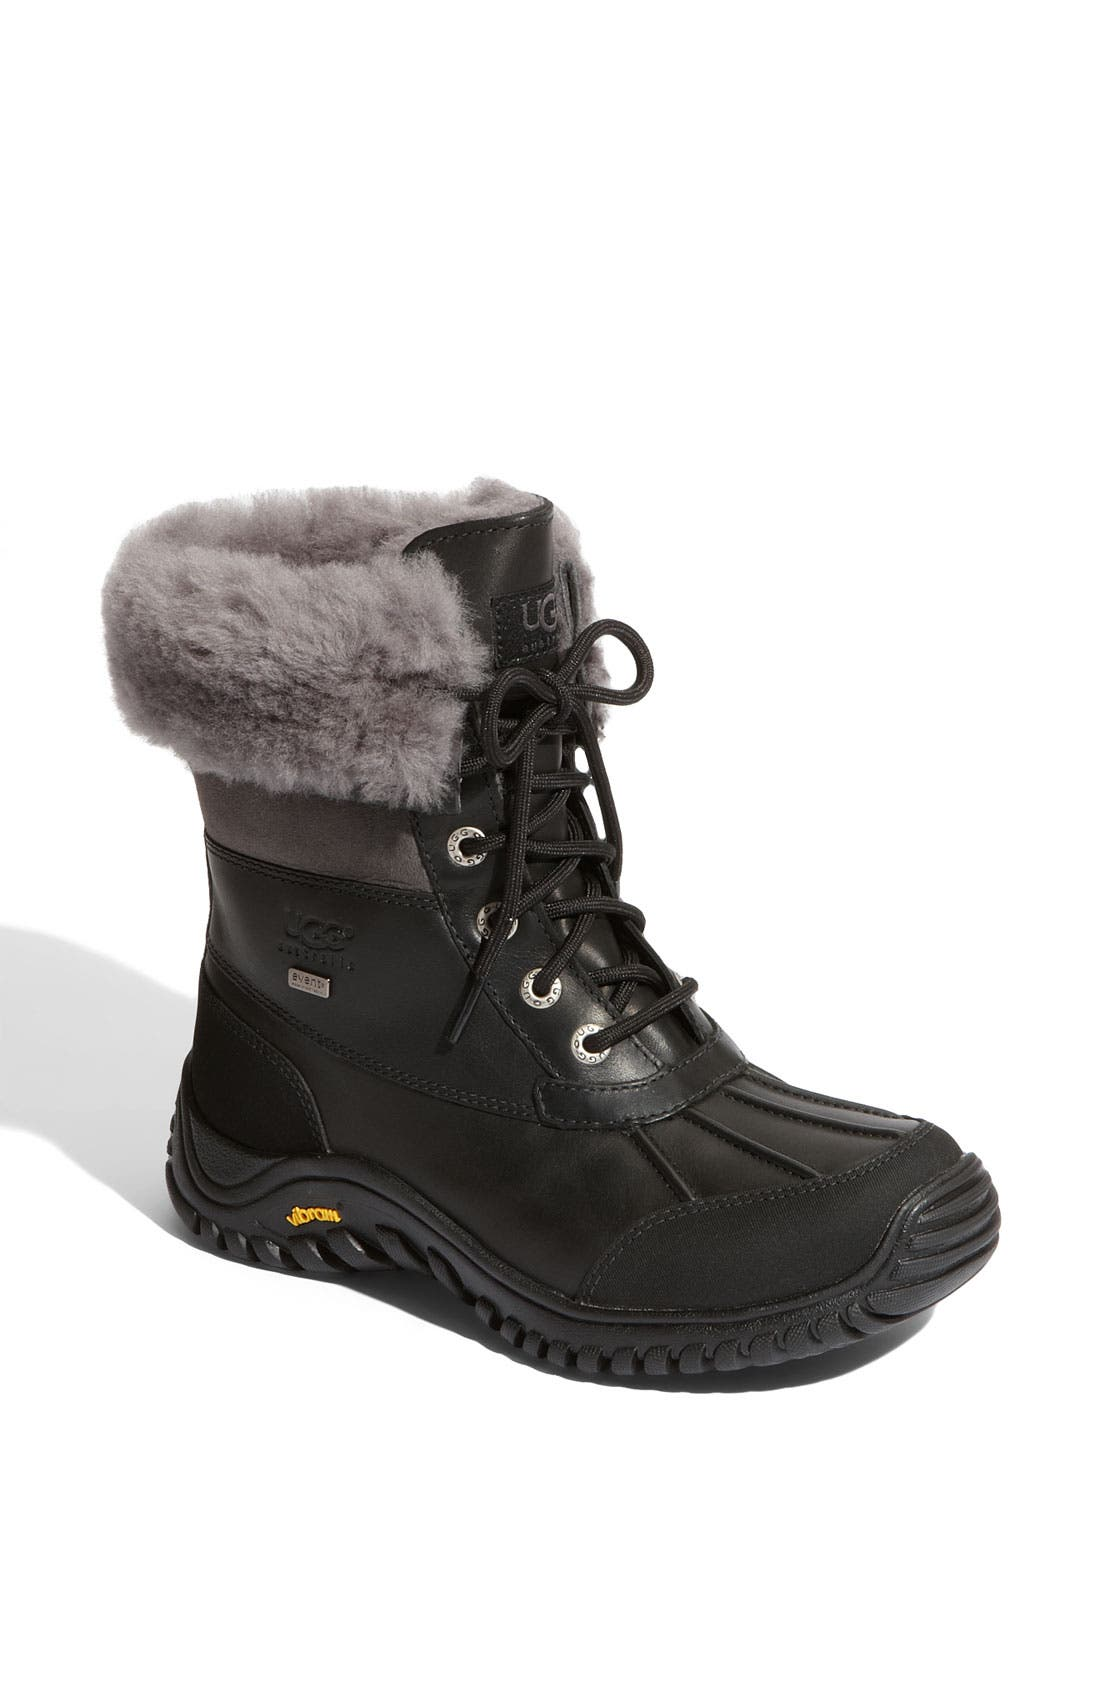 ugg waterproof boots